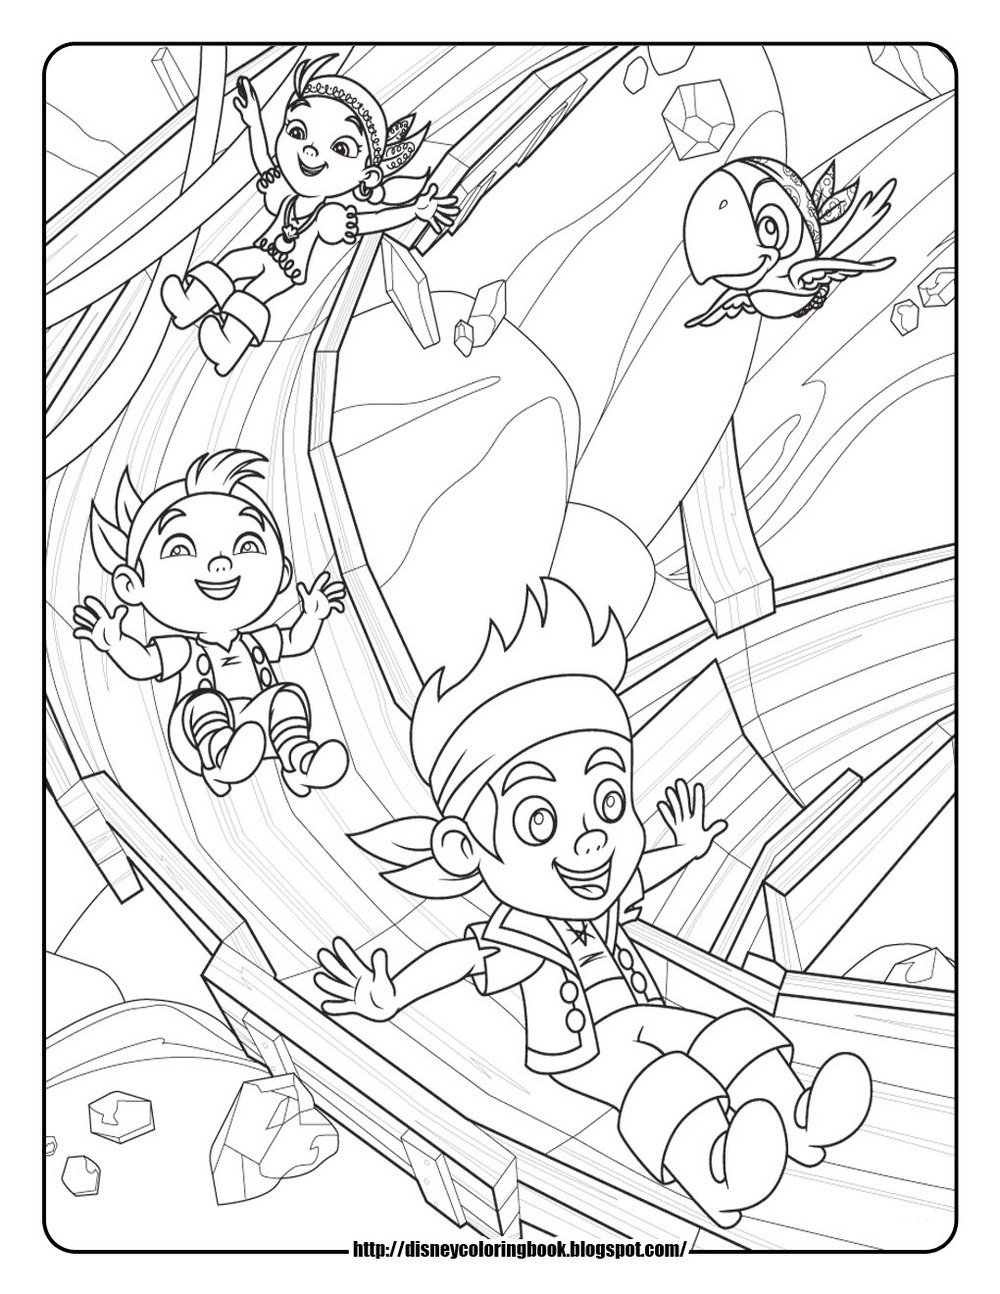 jake-and-the-never-land-pirates-coloring-printable